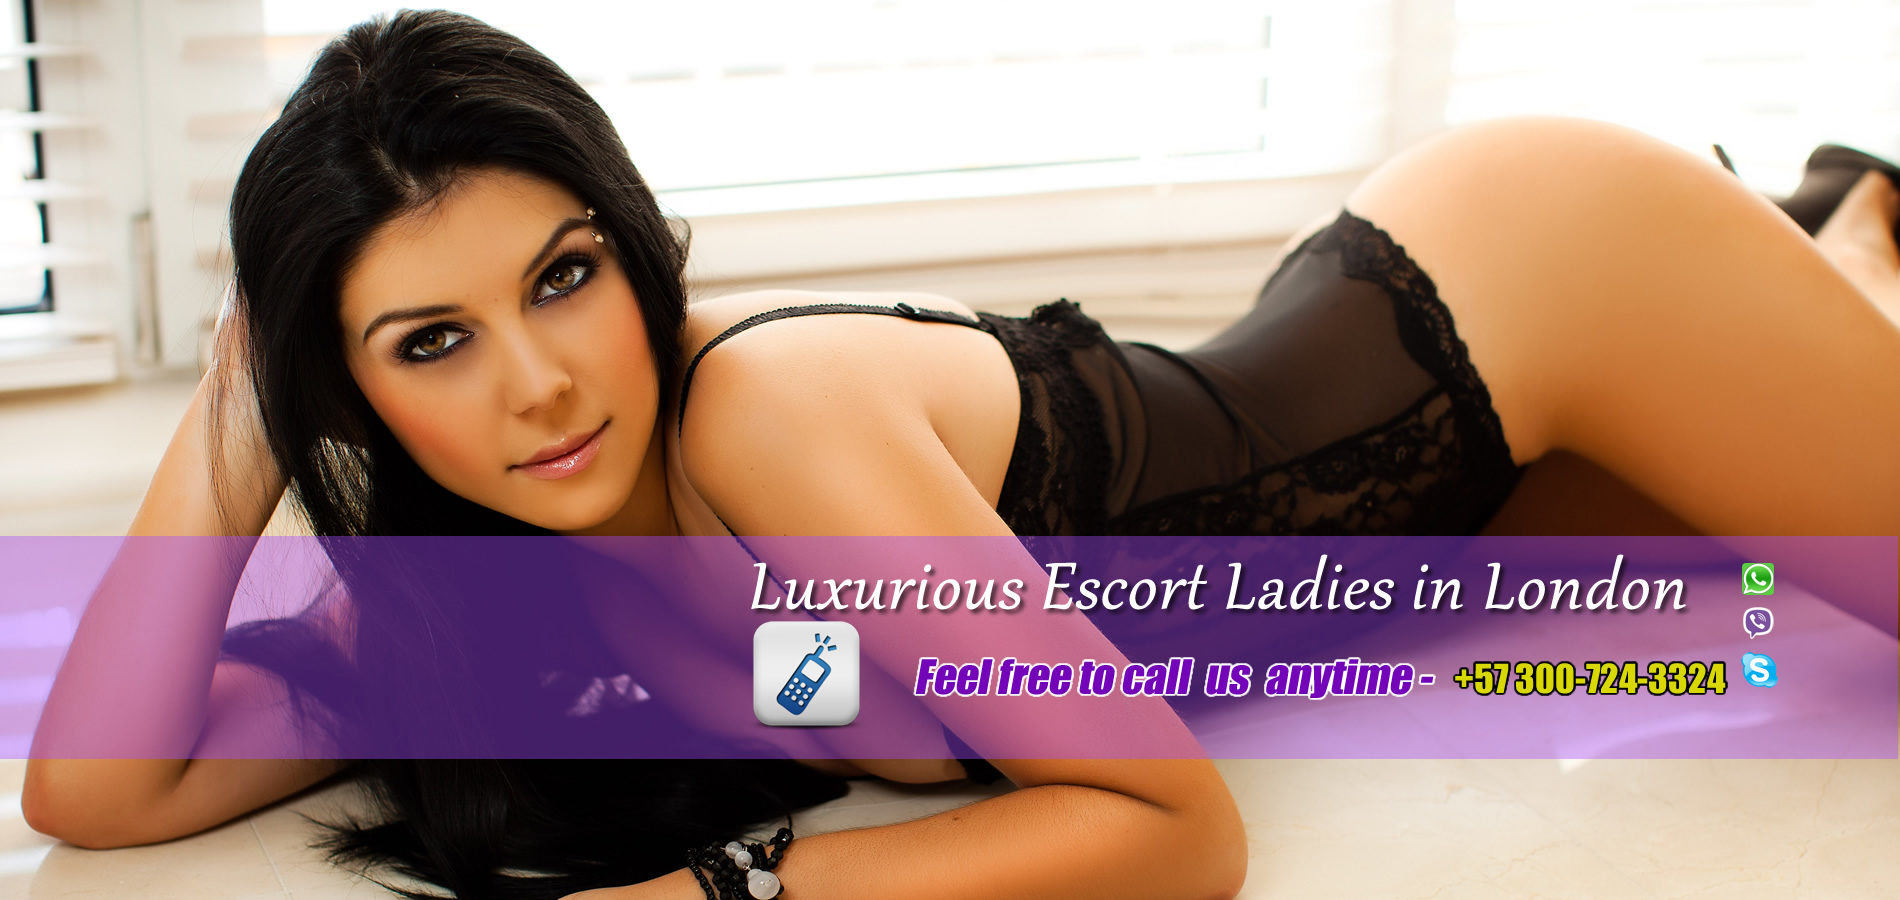 billig massasje bergen thai private escort